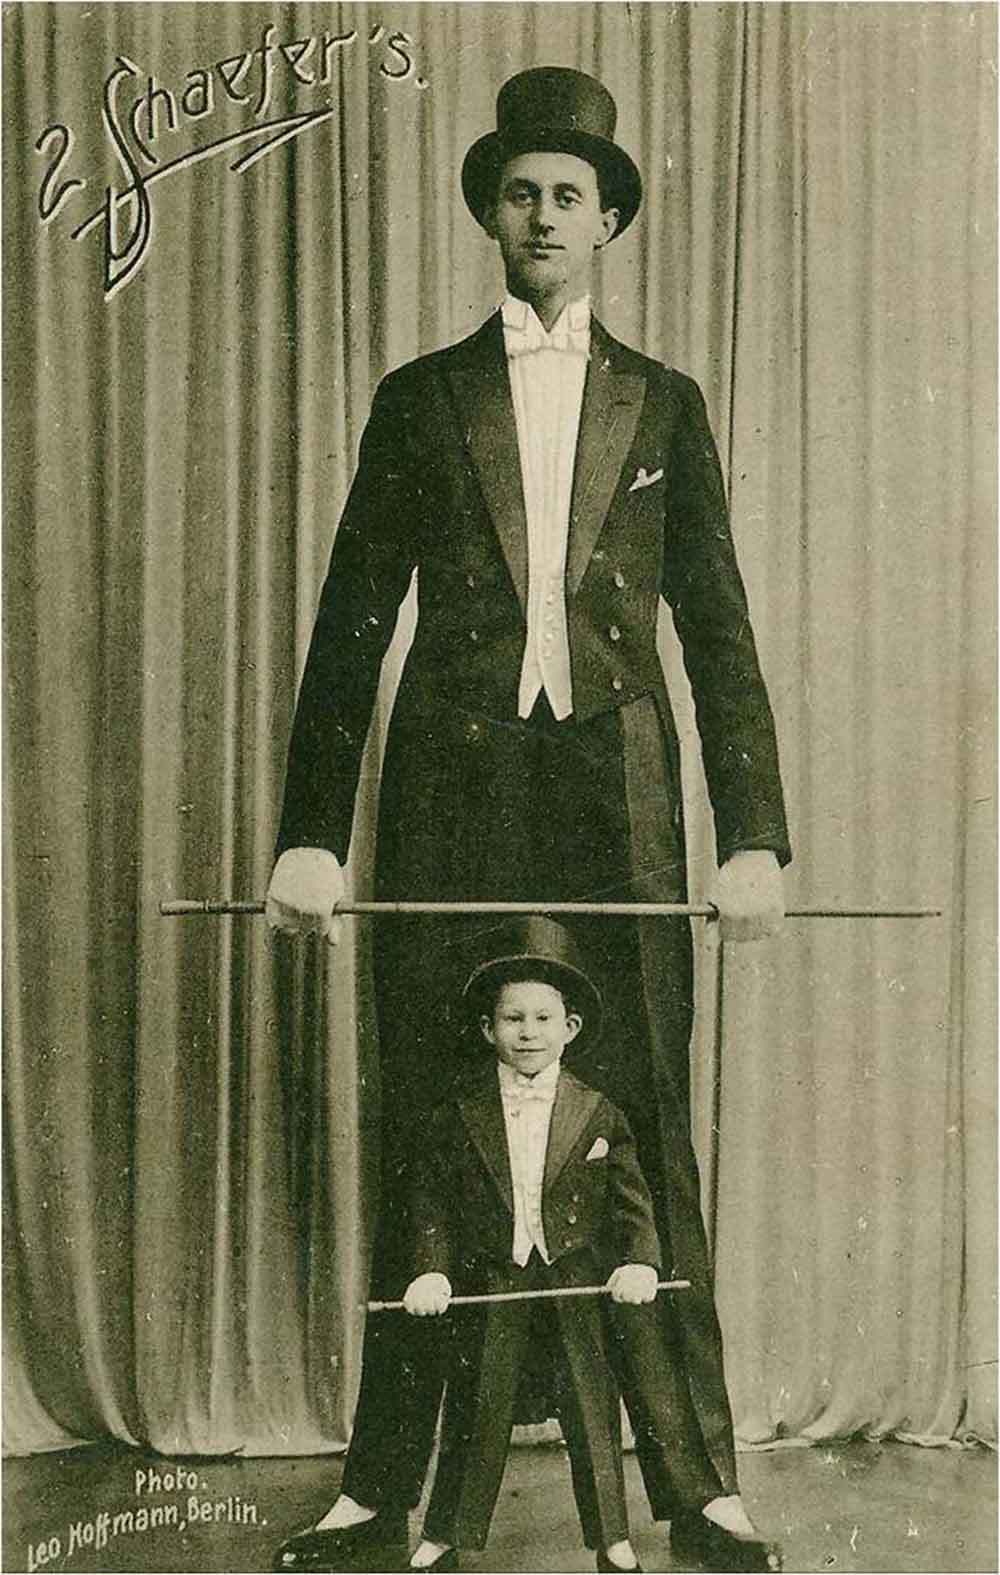 Nacken 17 as circus acrobat with a young boy assistant.